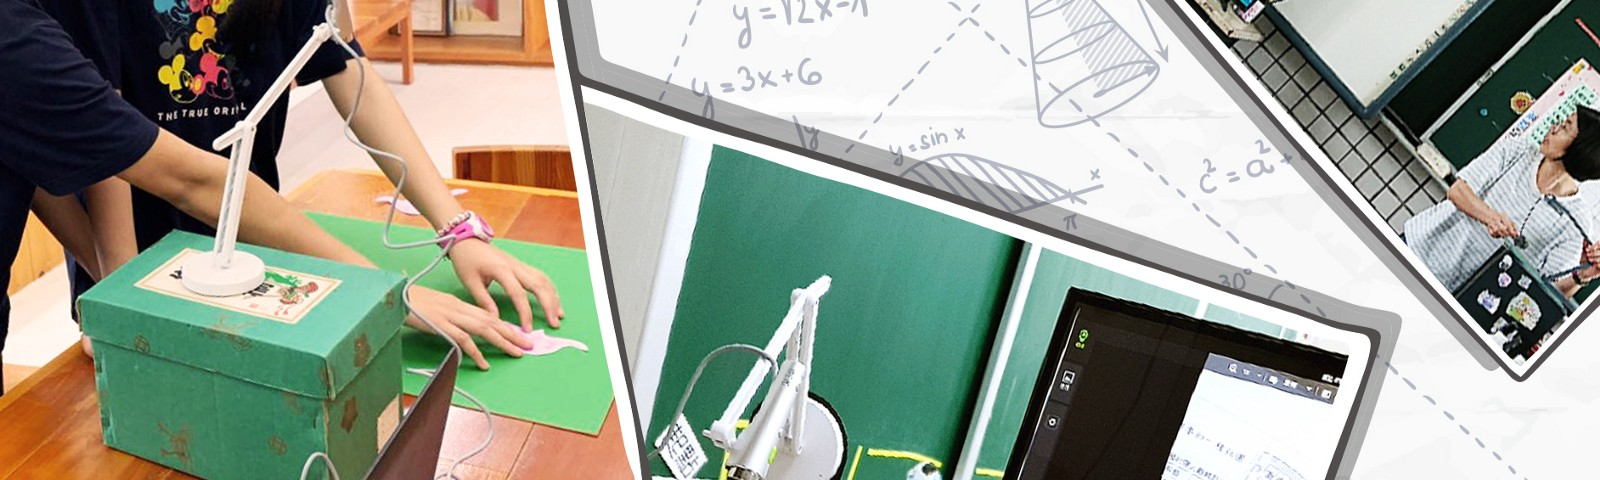 IPEVO's RMA Journey Part Three: Utilizing Document Cameras for Teaching Math and Science & Technology